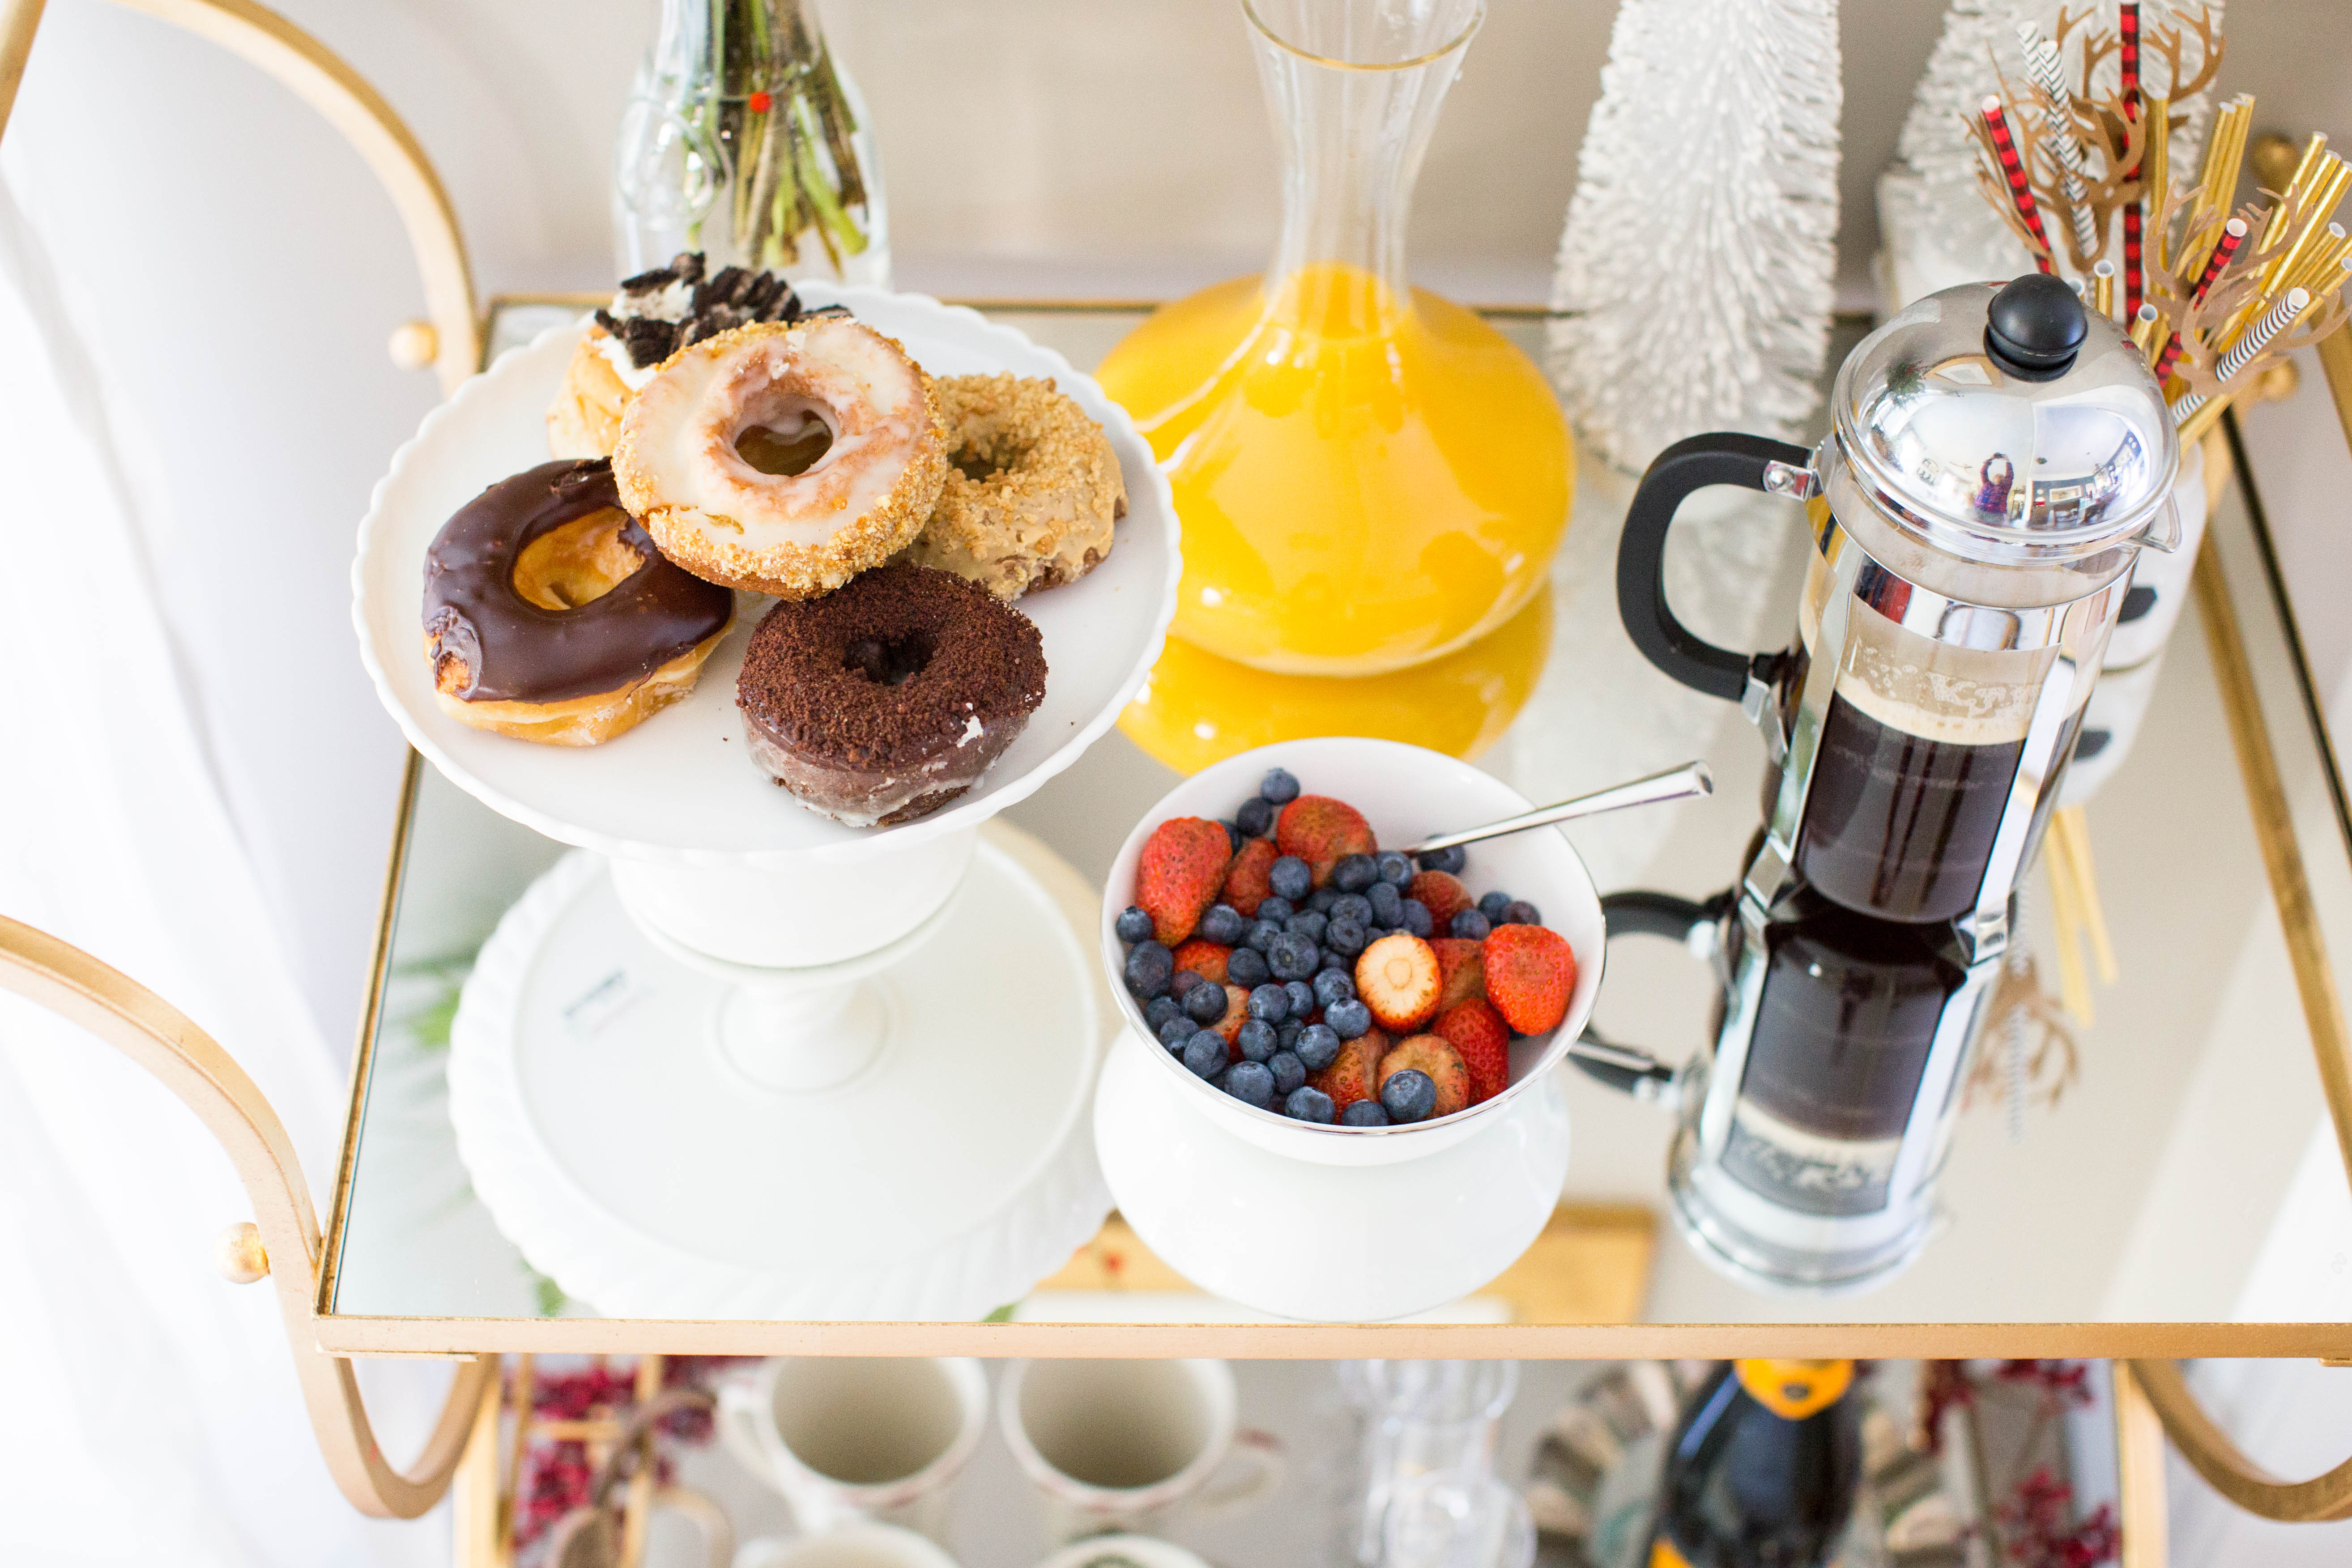 img_3917 - 3 Awesome Holiday Bar Cart Ideas by North Carolina style blogger Coffee Beans and Bobby Pins